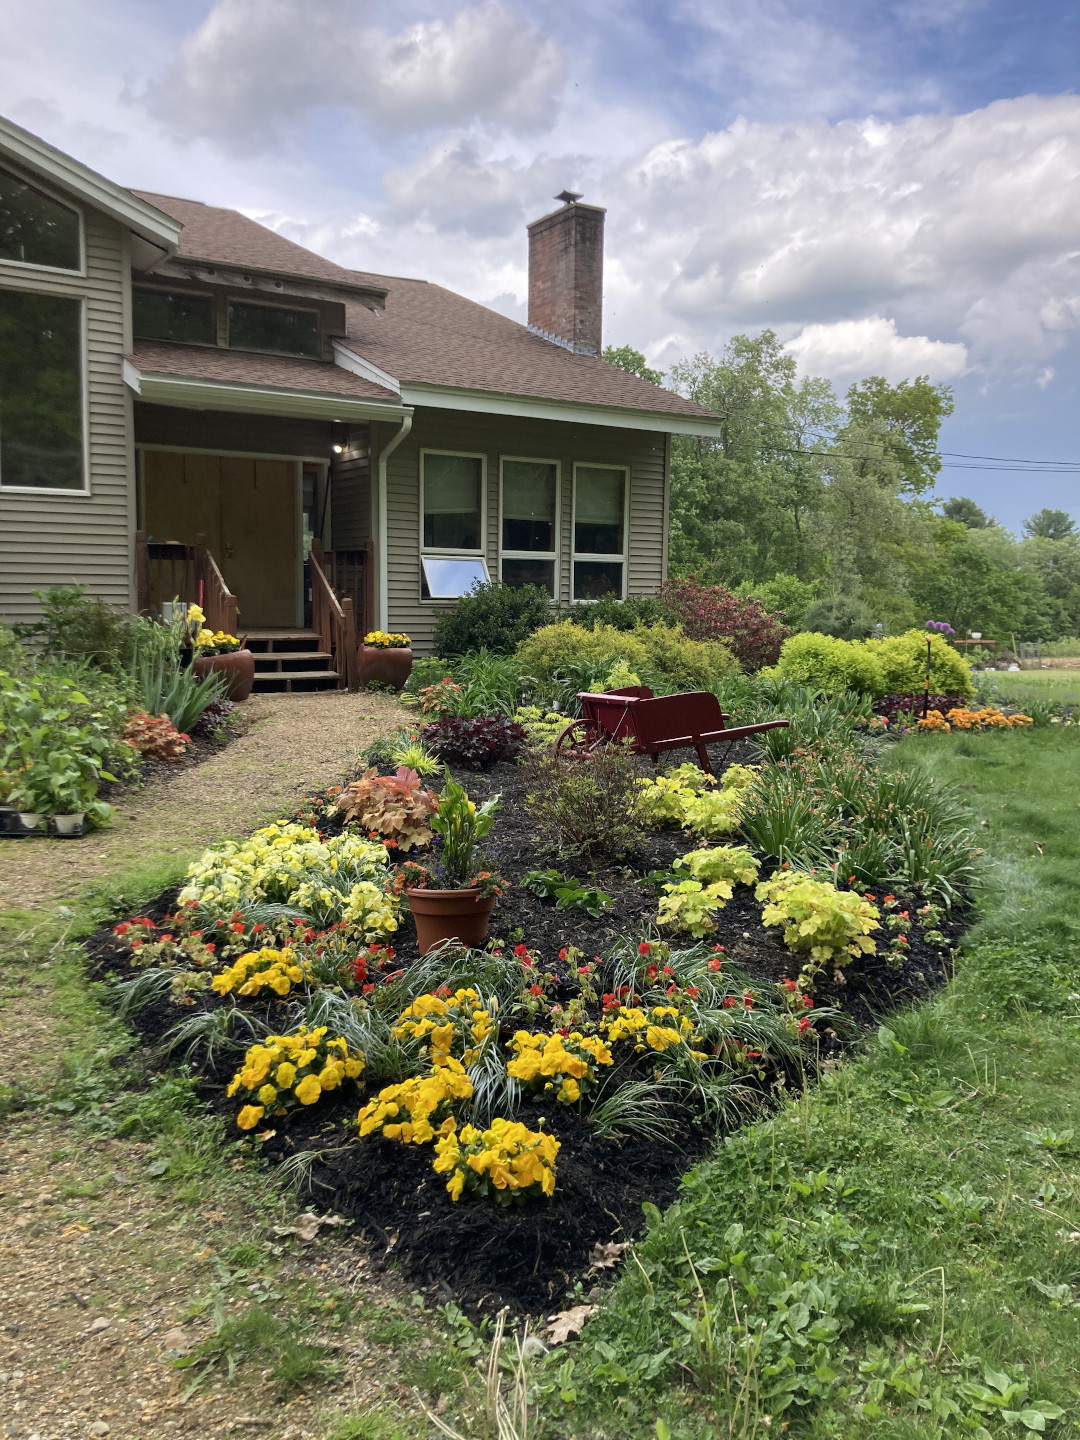 Garden bed with lots of red and yellow